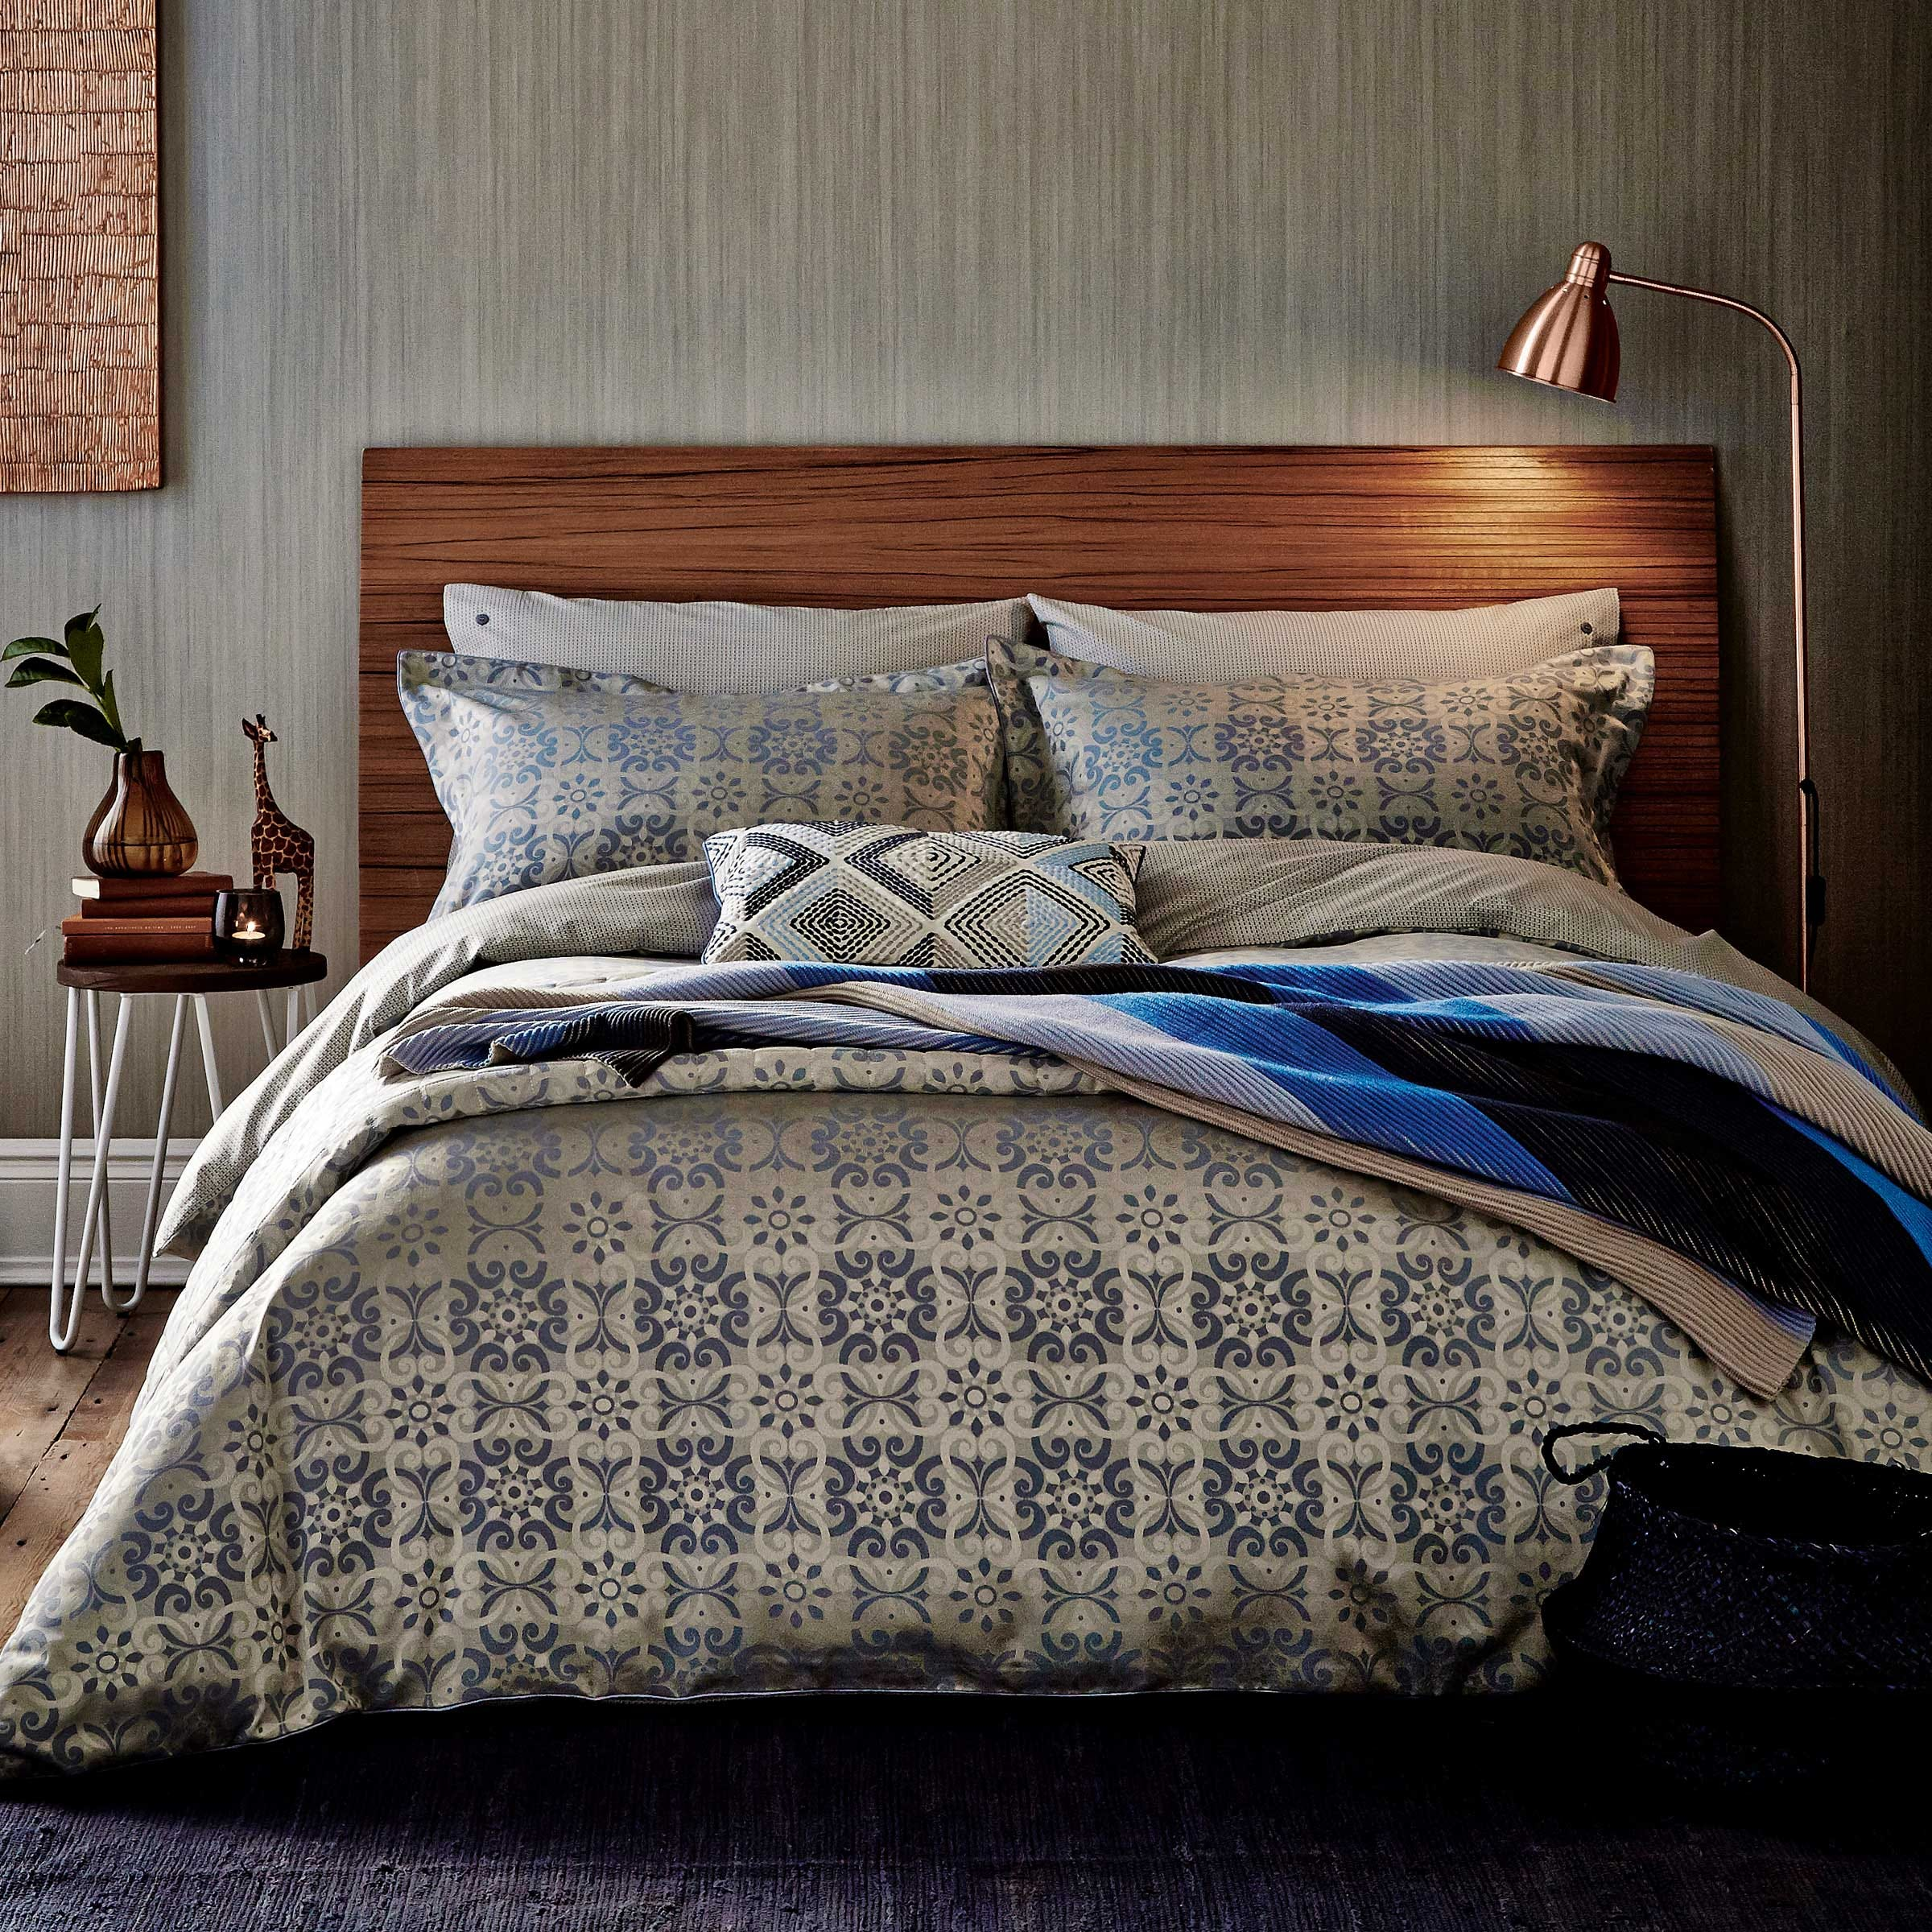 Bedeck 1951 Alie Single Duvet Cover, Sky Blue